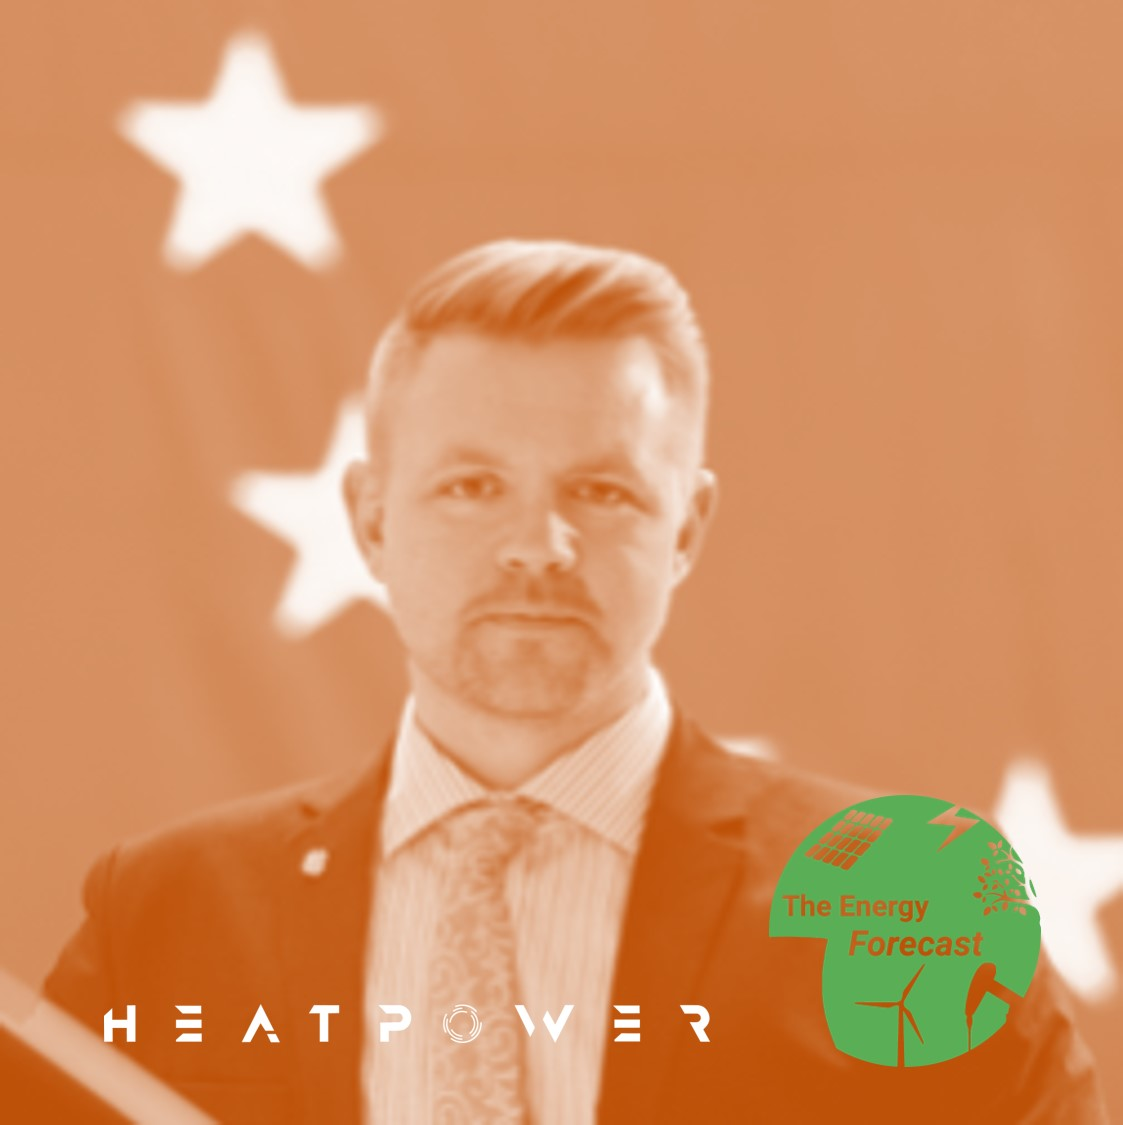 5. Fredrick Federley - Member of the EU parliament proponent of sustainable energy and lowering CO2 emissions